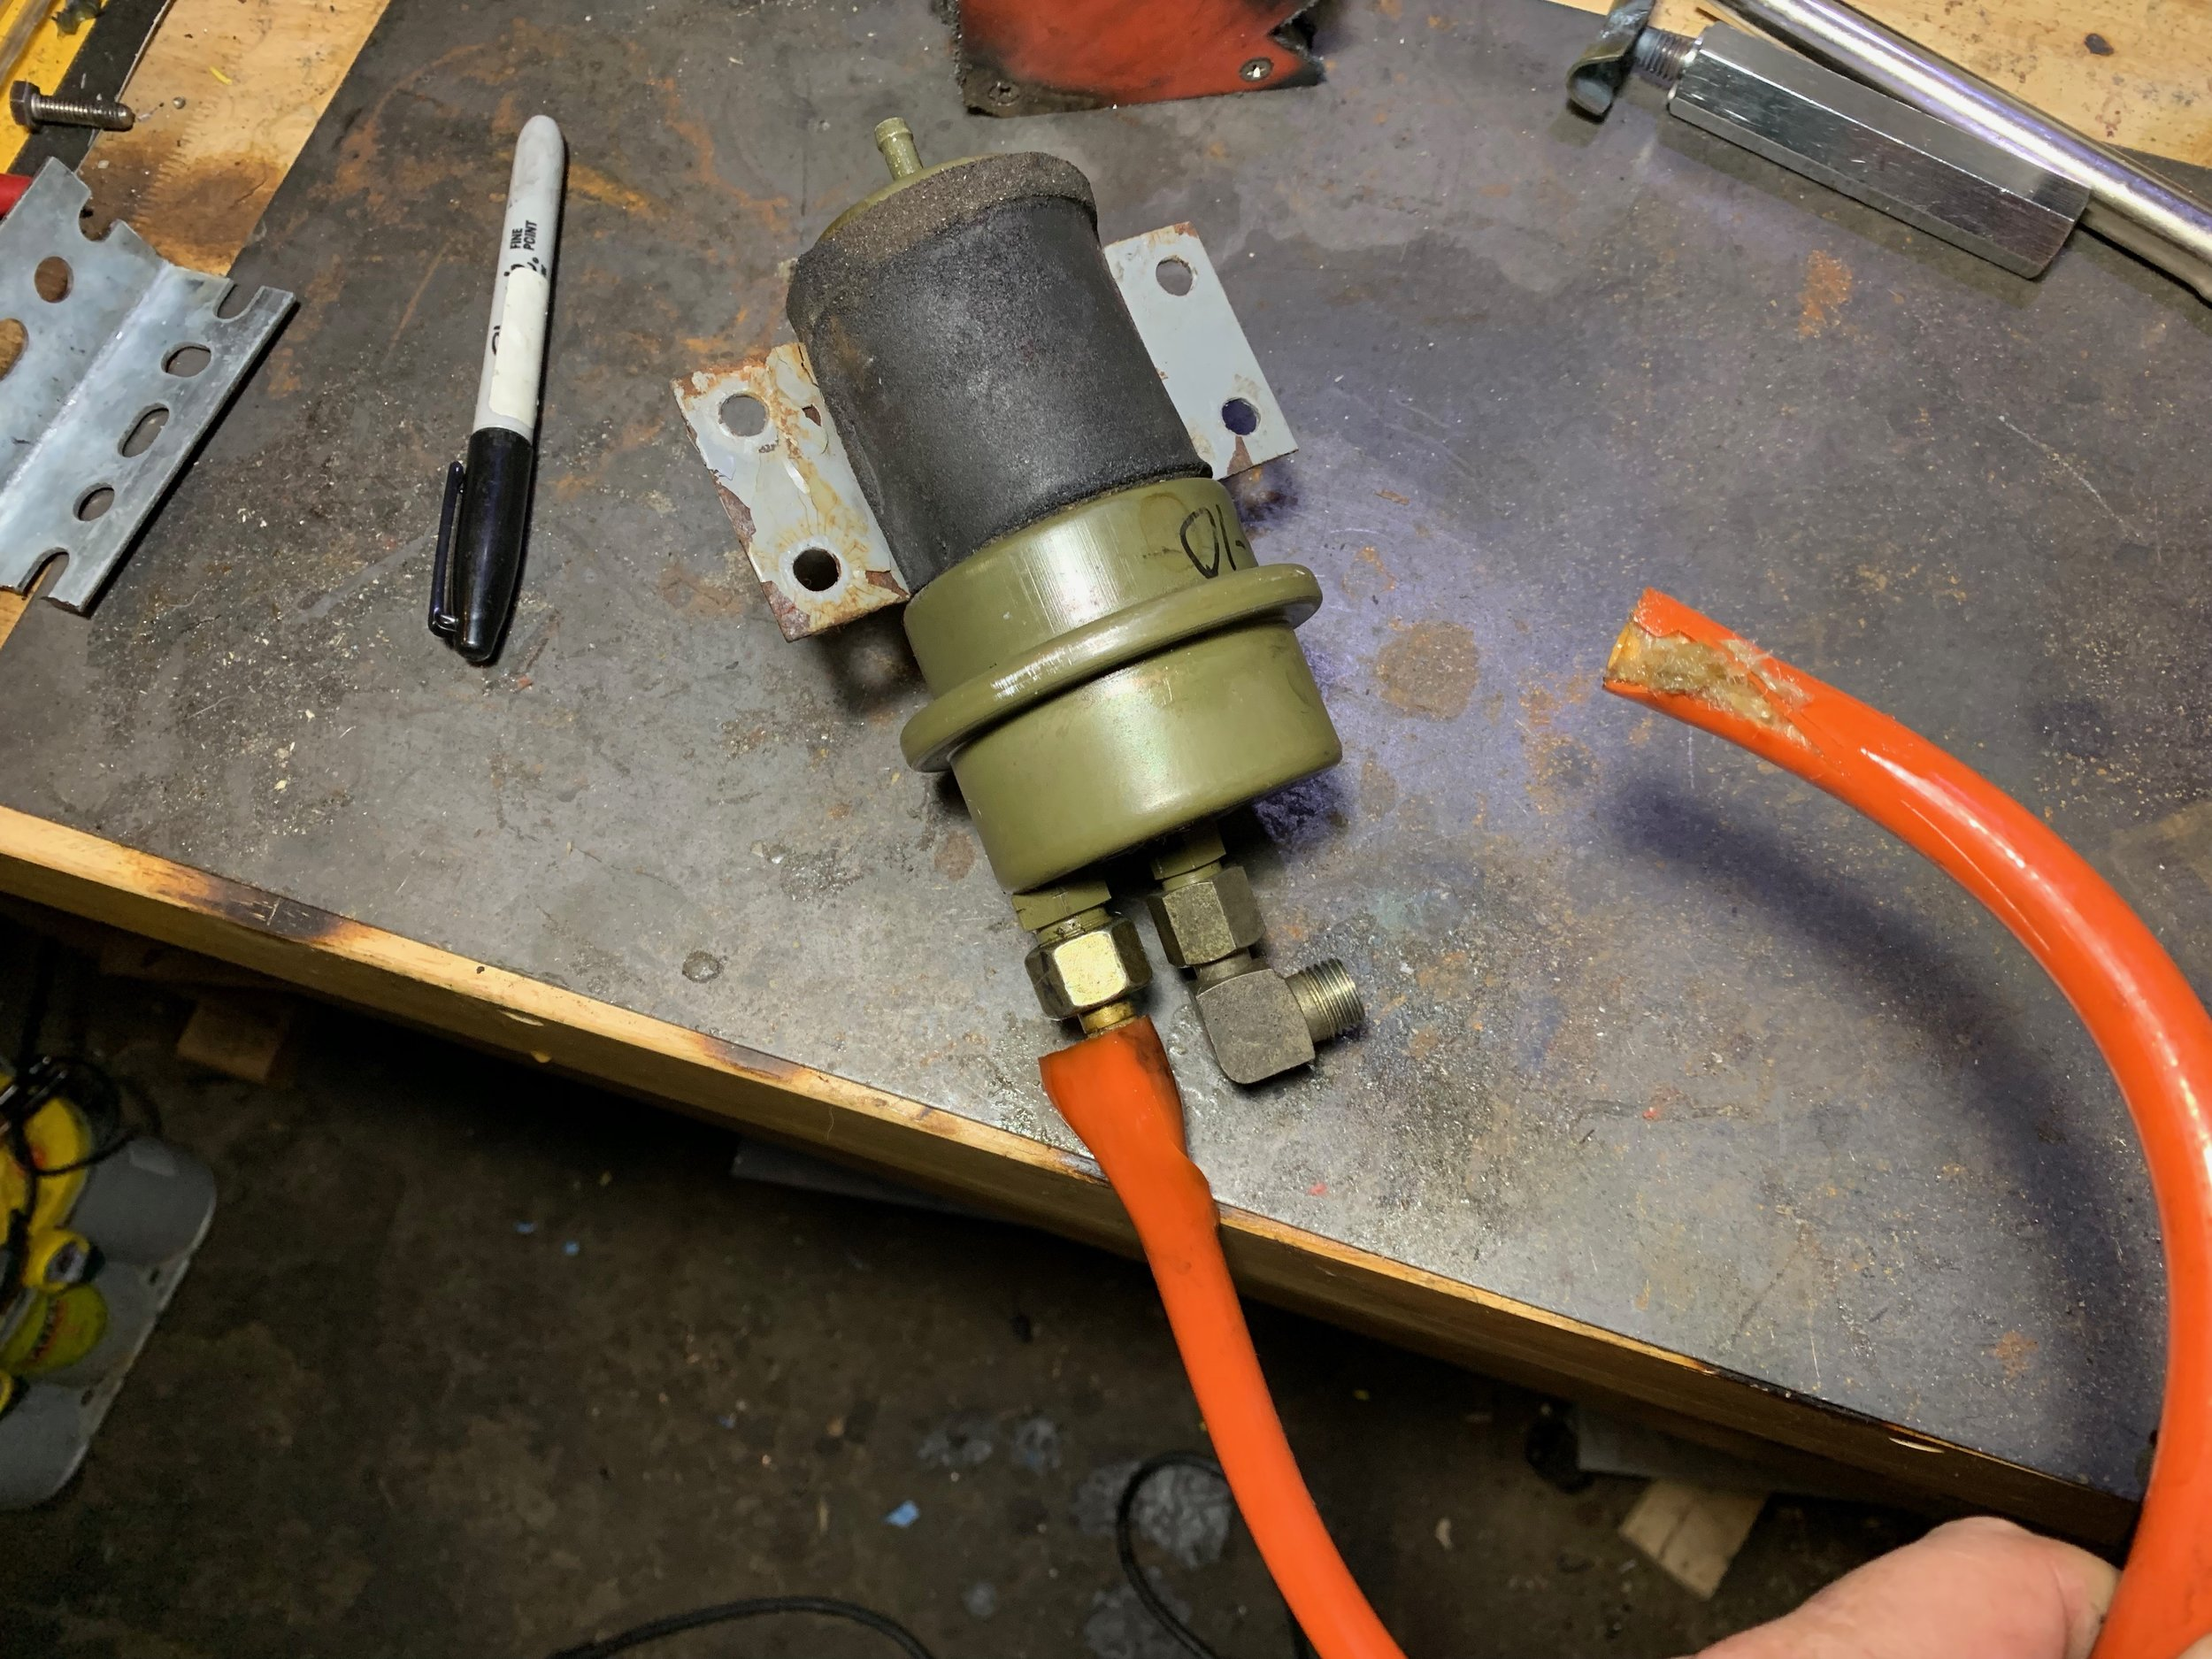 The accumulator removed from the car. One end of the orange hose is partially cut for removal, while the other end was cut off in the car.